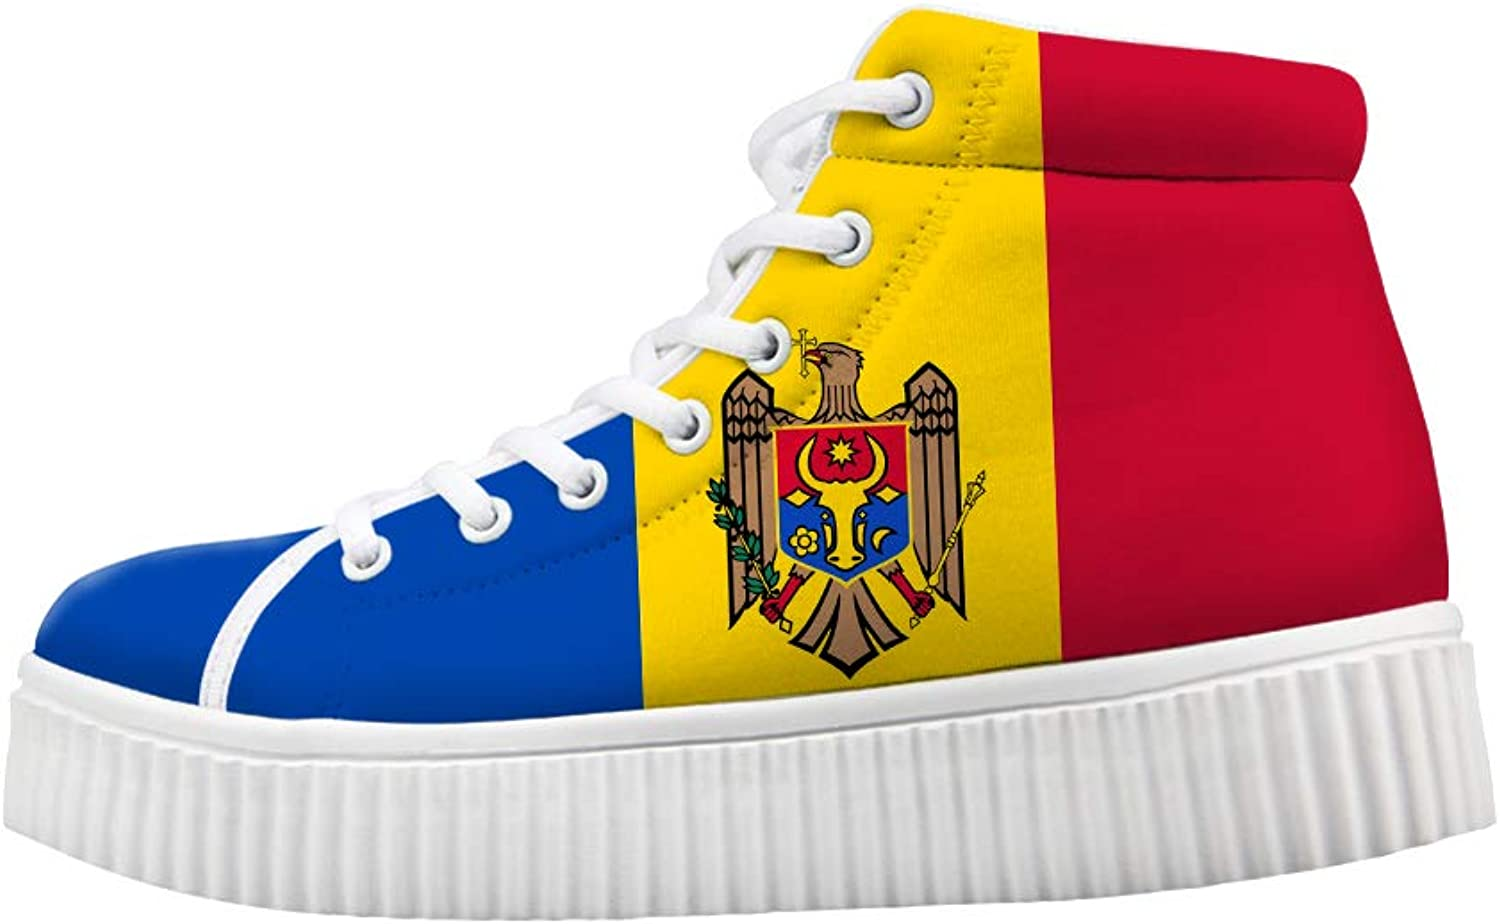 Owaheson Platform Lace up Sneaker Casual Chunky Walking shoes High Top Women Moldova Flag